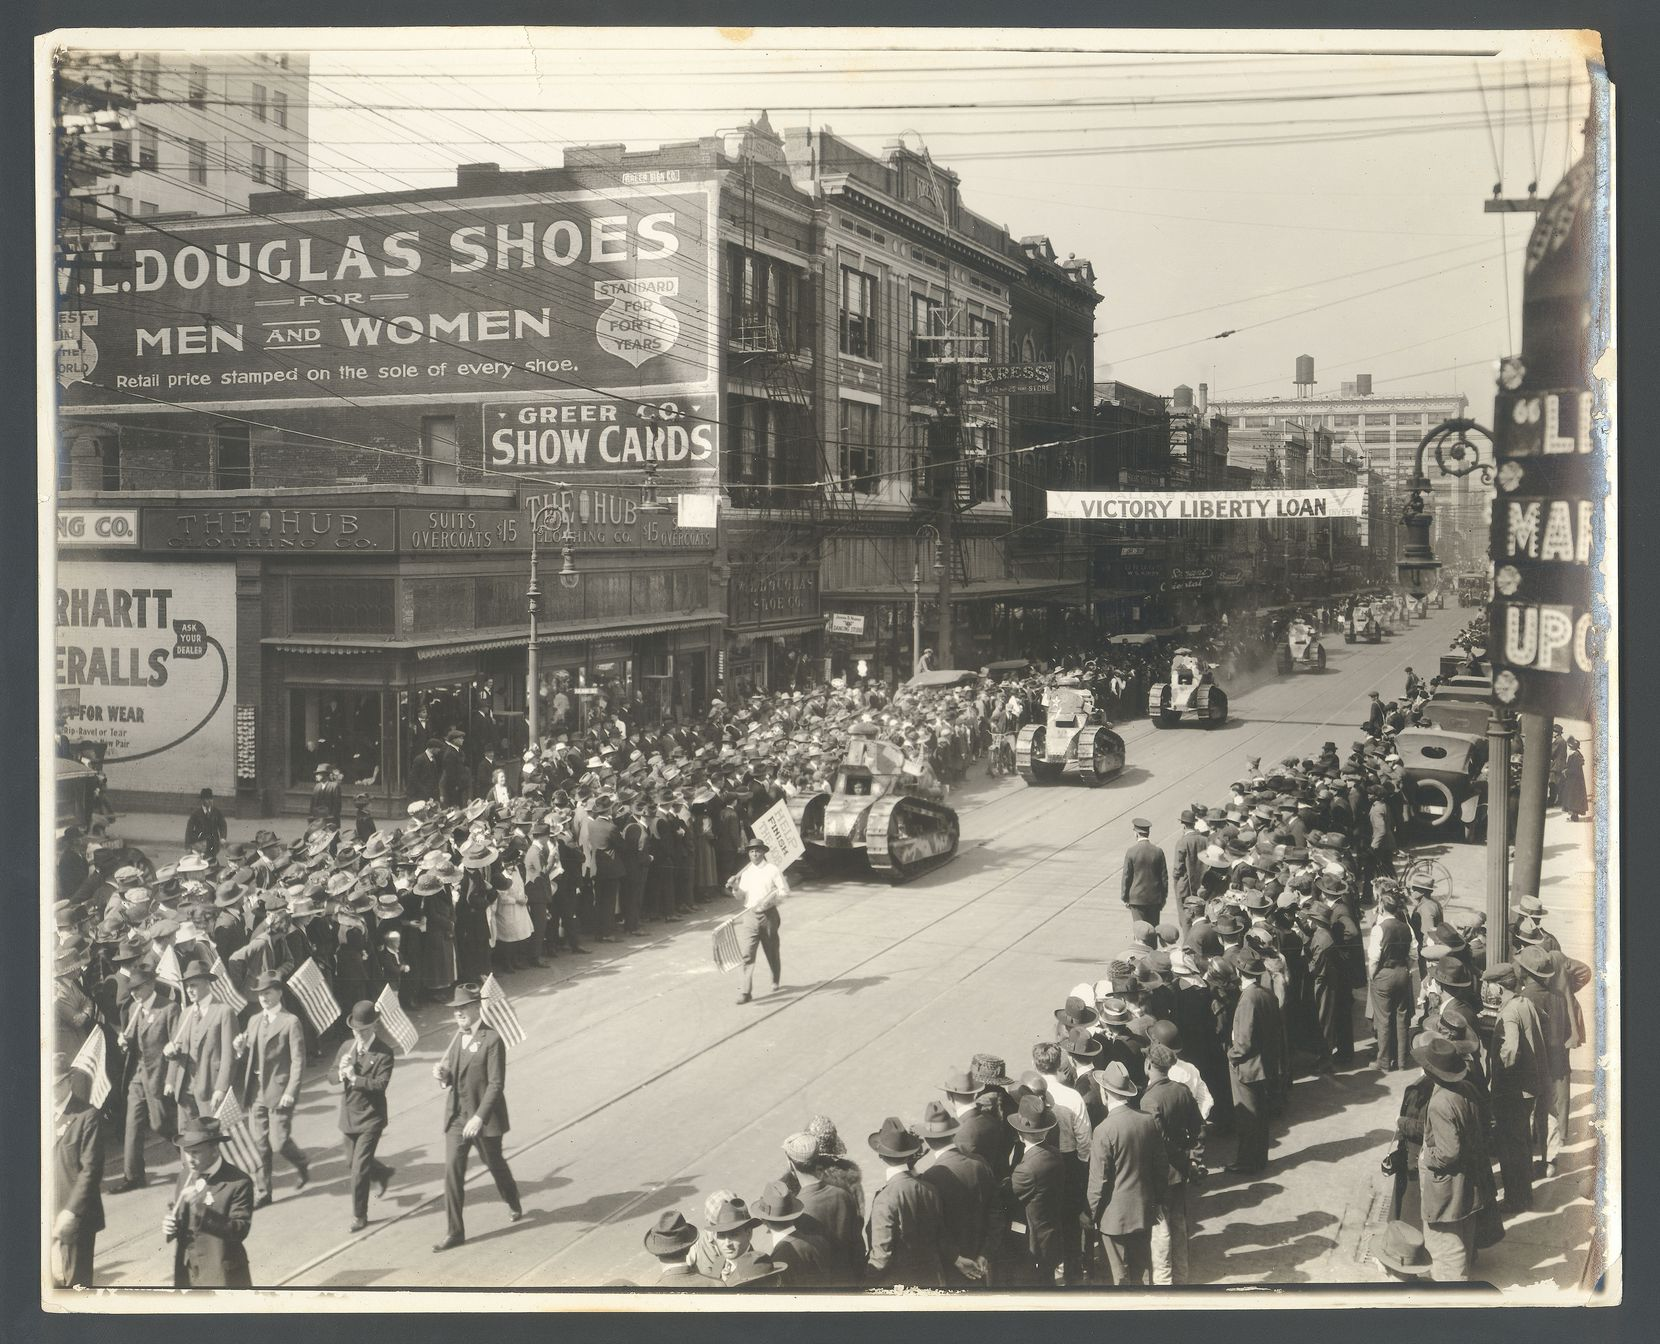 The patriotic Victory Liberty Loan Parade in downtown Dallas in 1917 was similar to one the following year that led to rapid spread of the Spanish flu. (Courtesy DeGolyer Library, Southern Methodist University.)